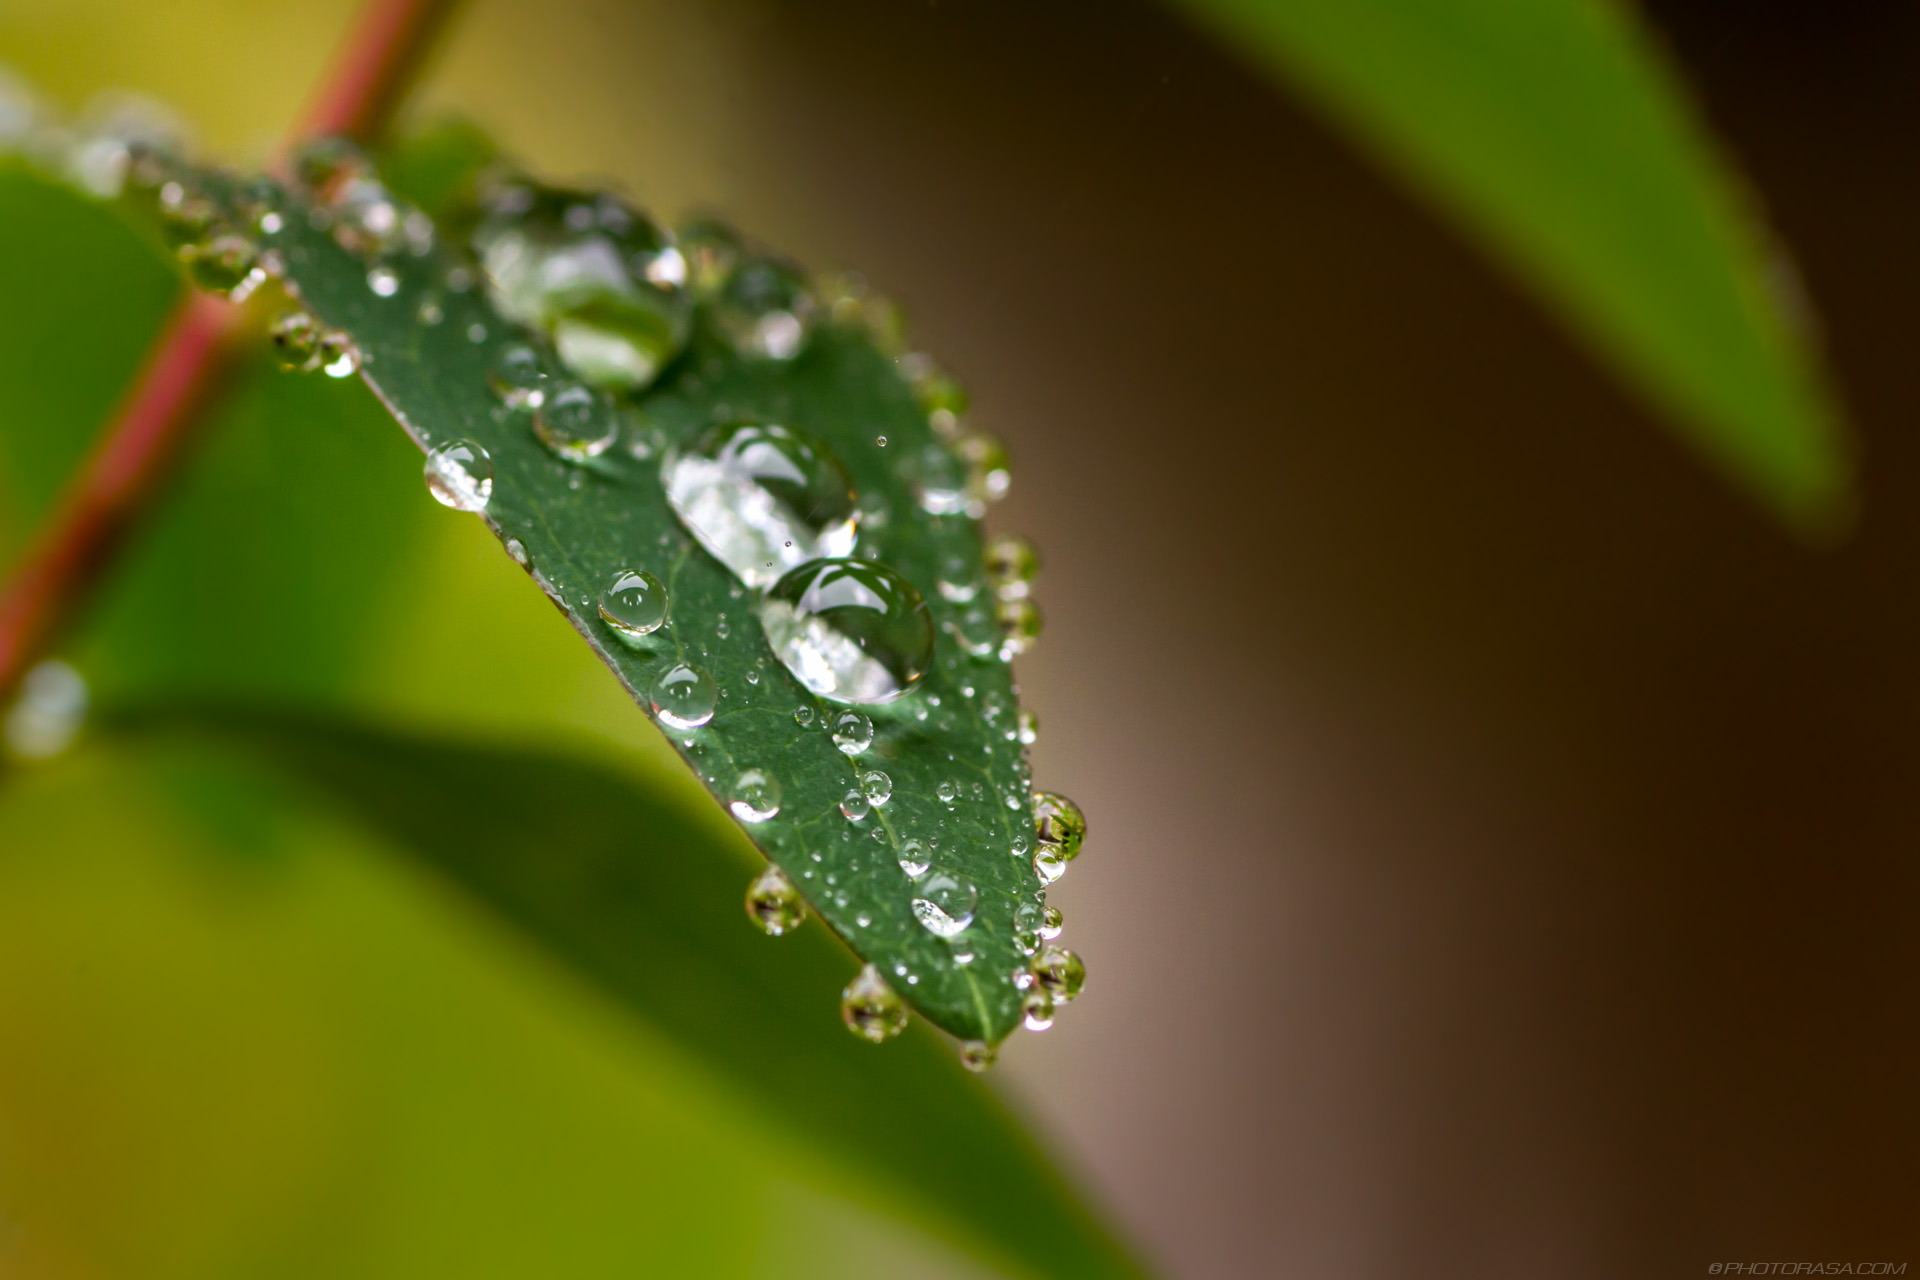 http://photorasa.com/dewdrops-tiny-leaves/dewdrops-about-to-dribble-off-leaf/